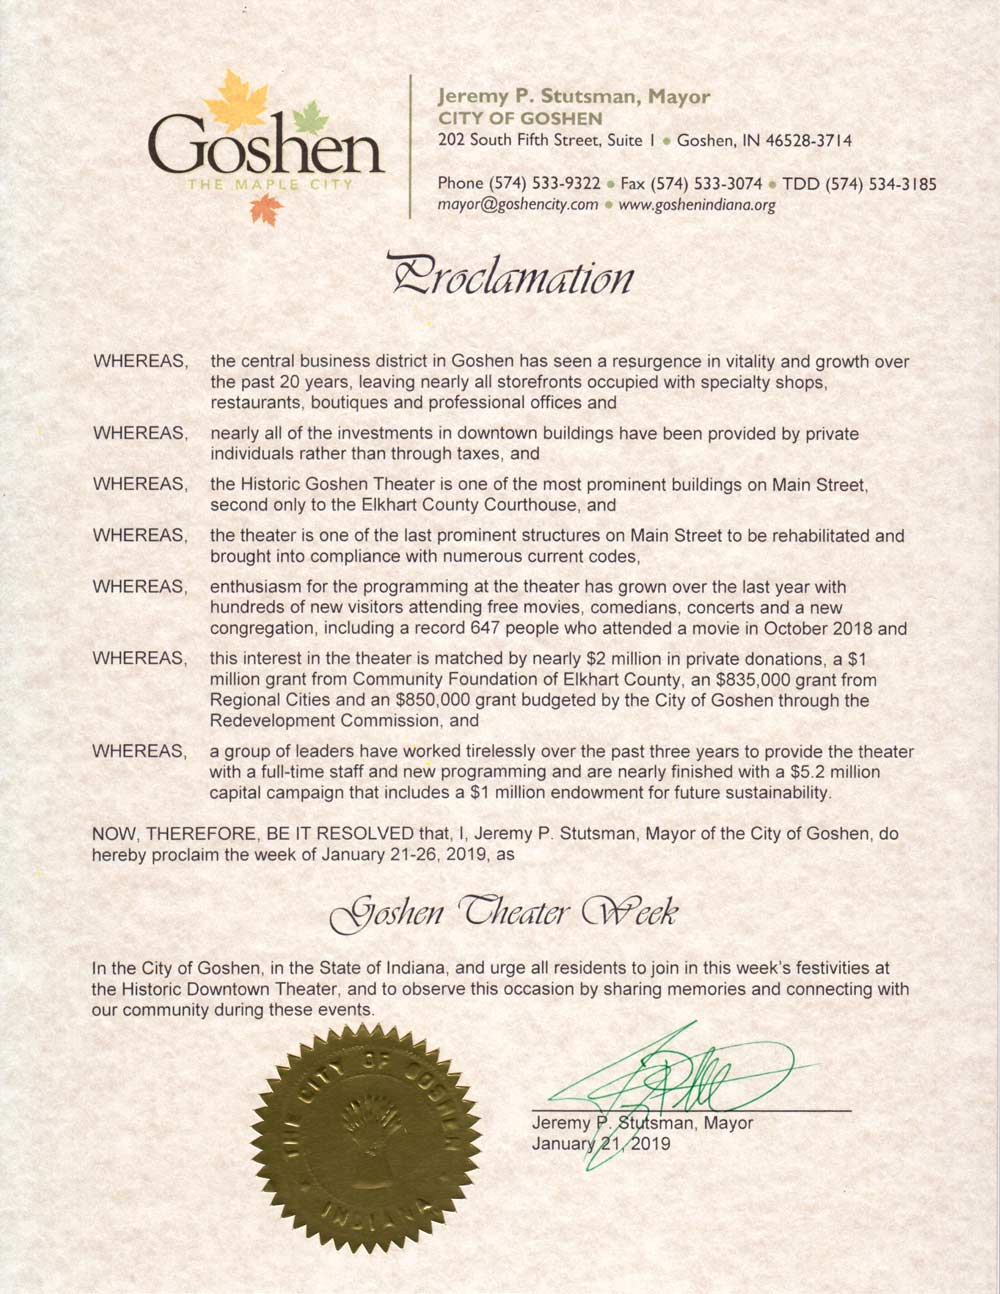 Goshen Theater Week - Proclamation by the Mayor